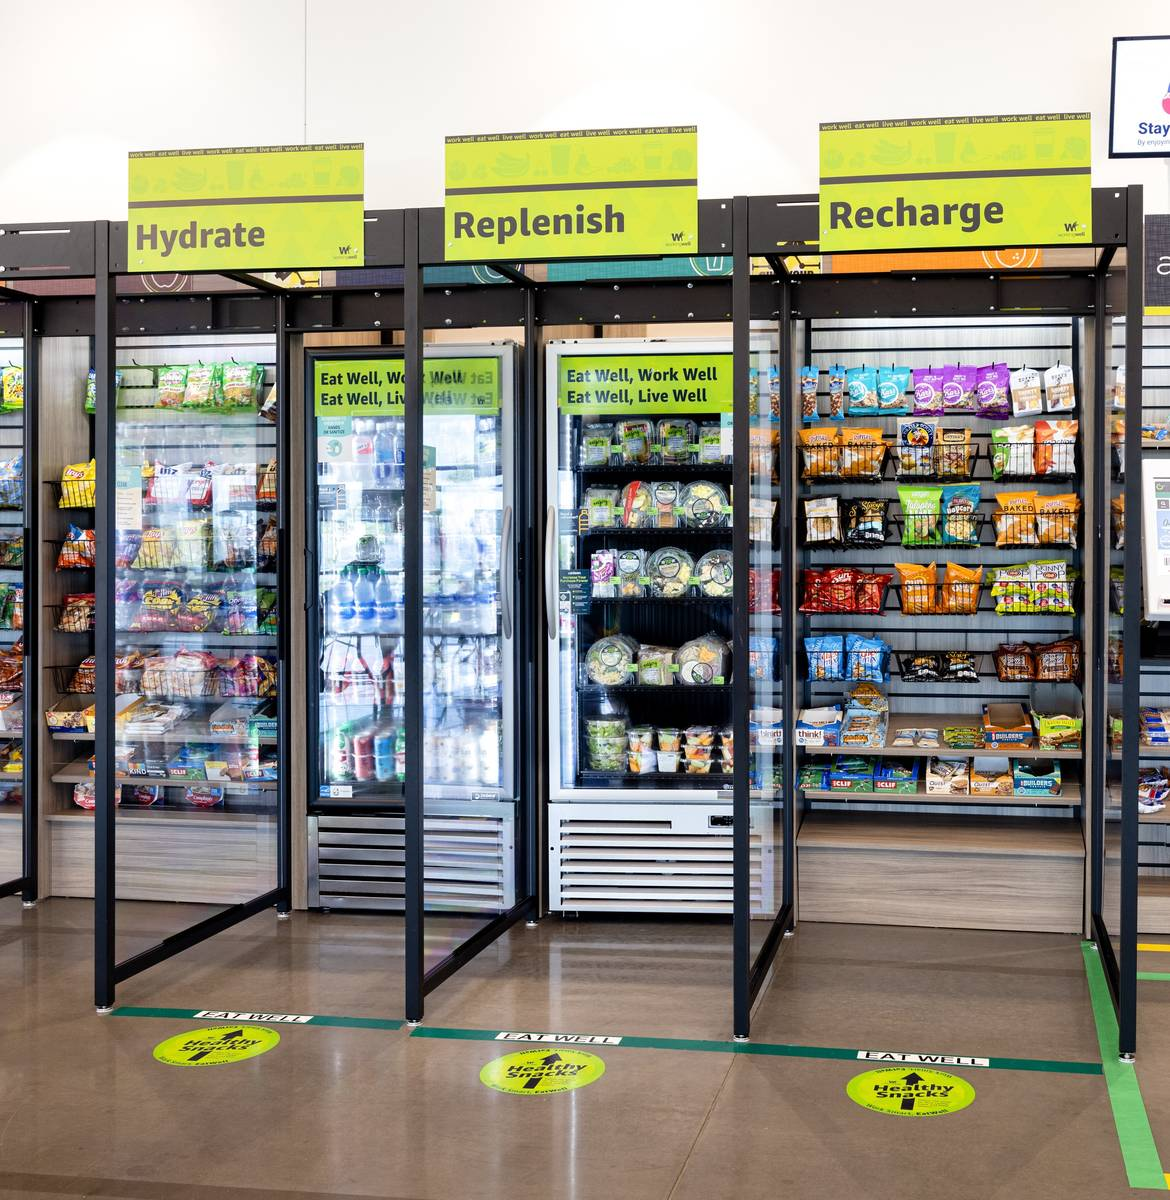 Amazon's new WorkingWell initiative includes access to healthy eating options. (Amazon)